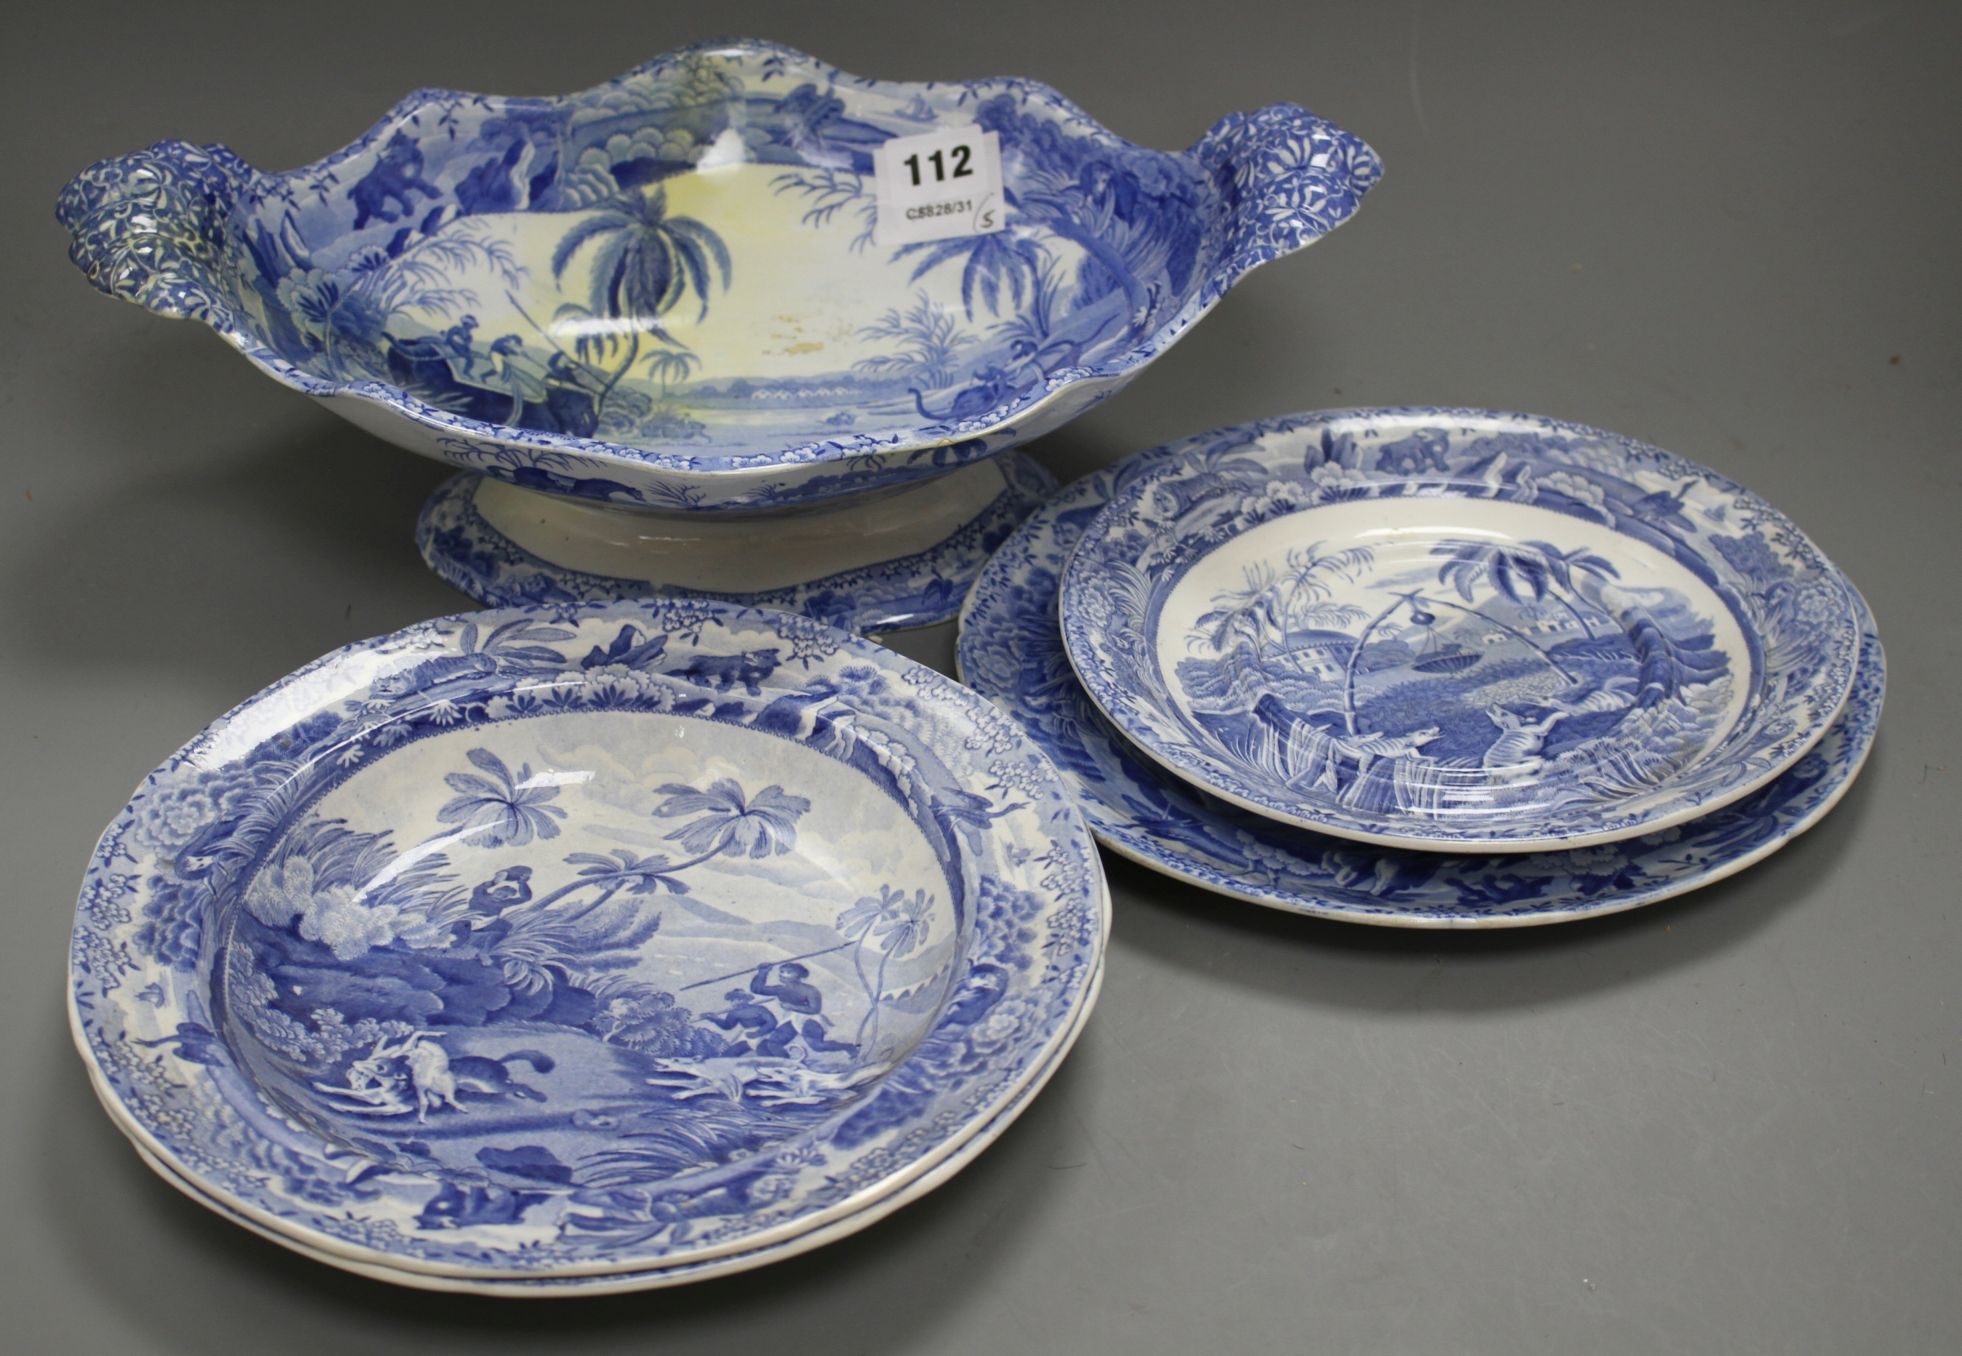 Lot 112 - Three Spode Indian Sporting Series blue and white plates, a stand and a footed dish, c. 1815- 25,